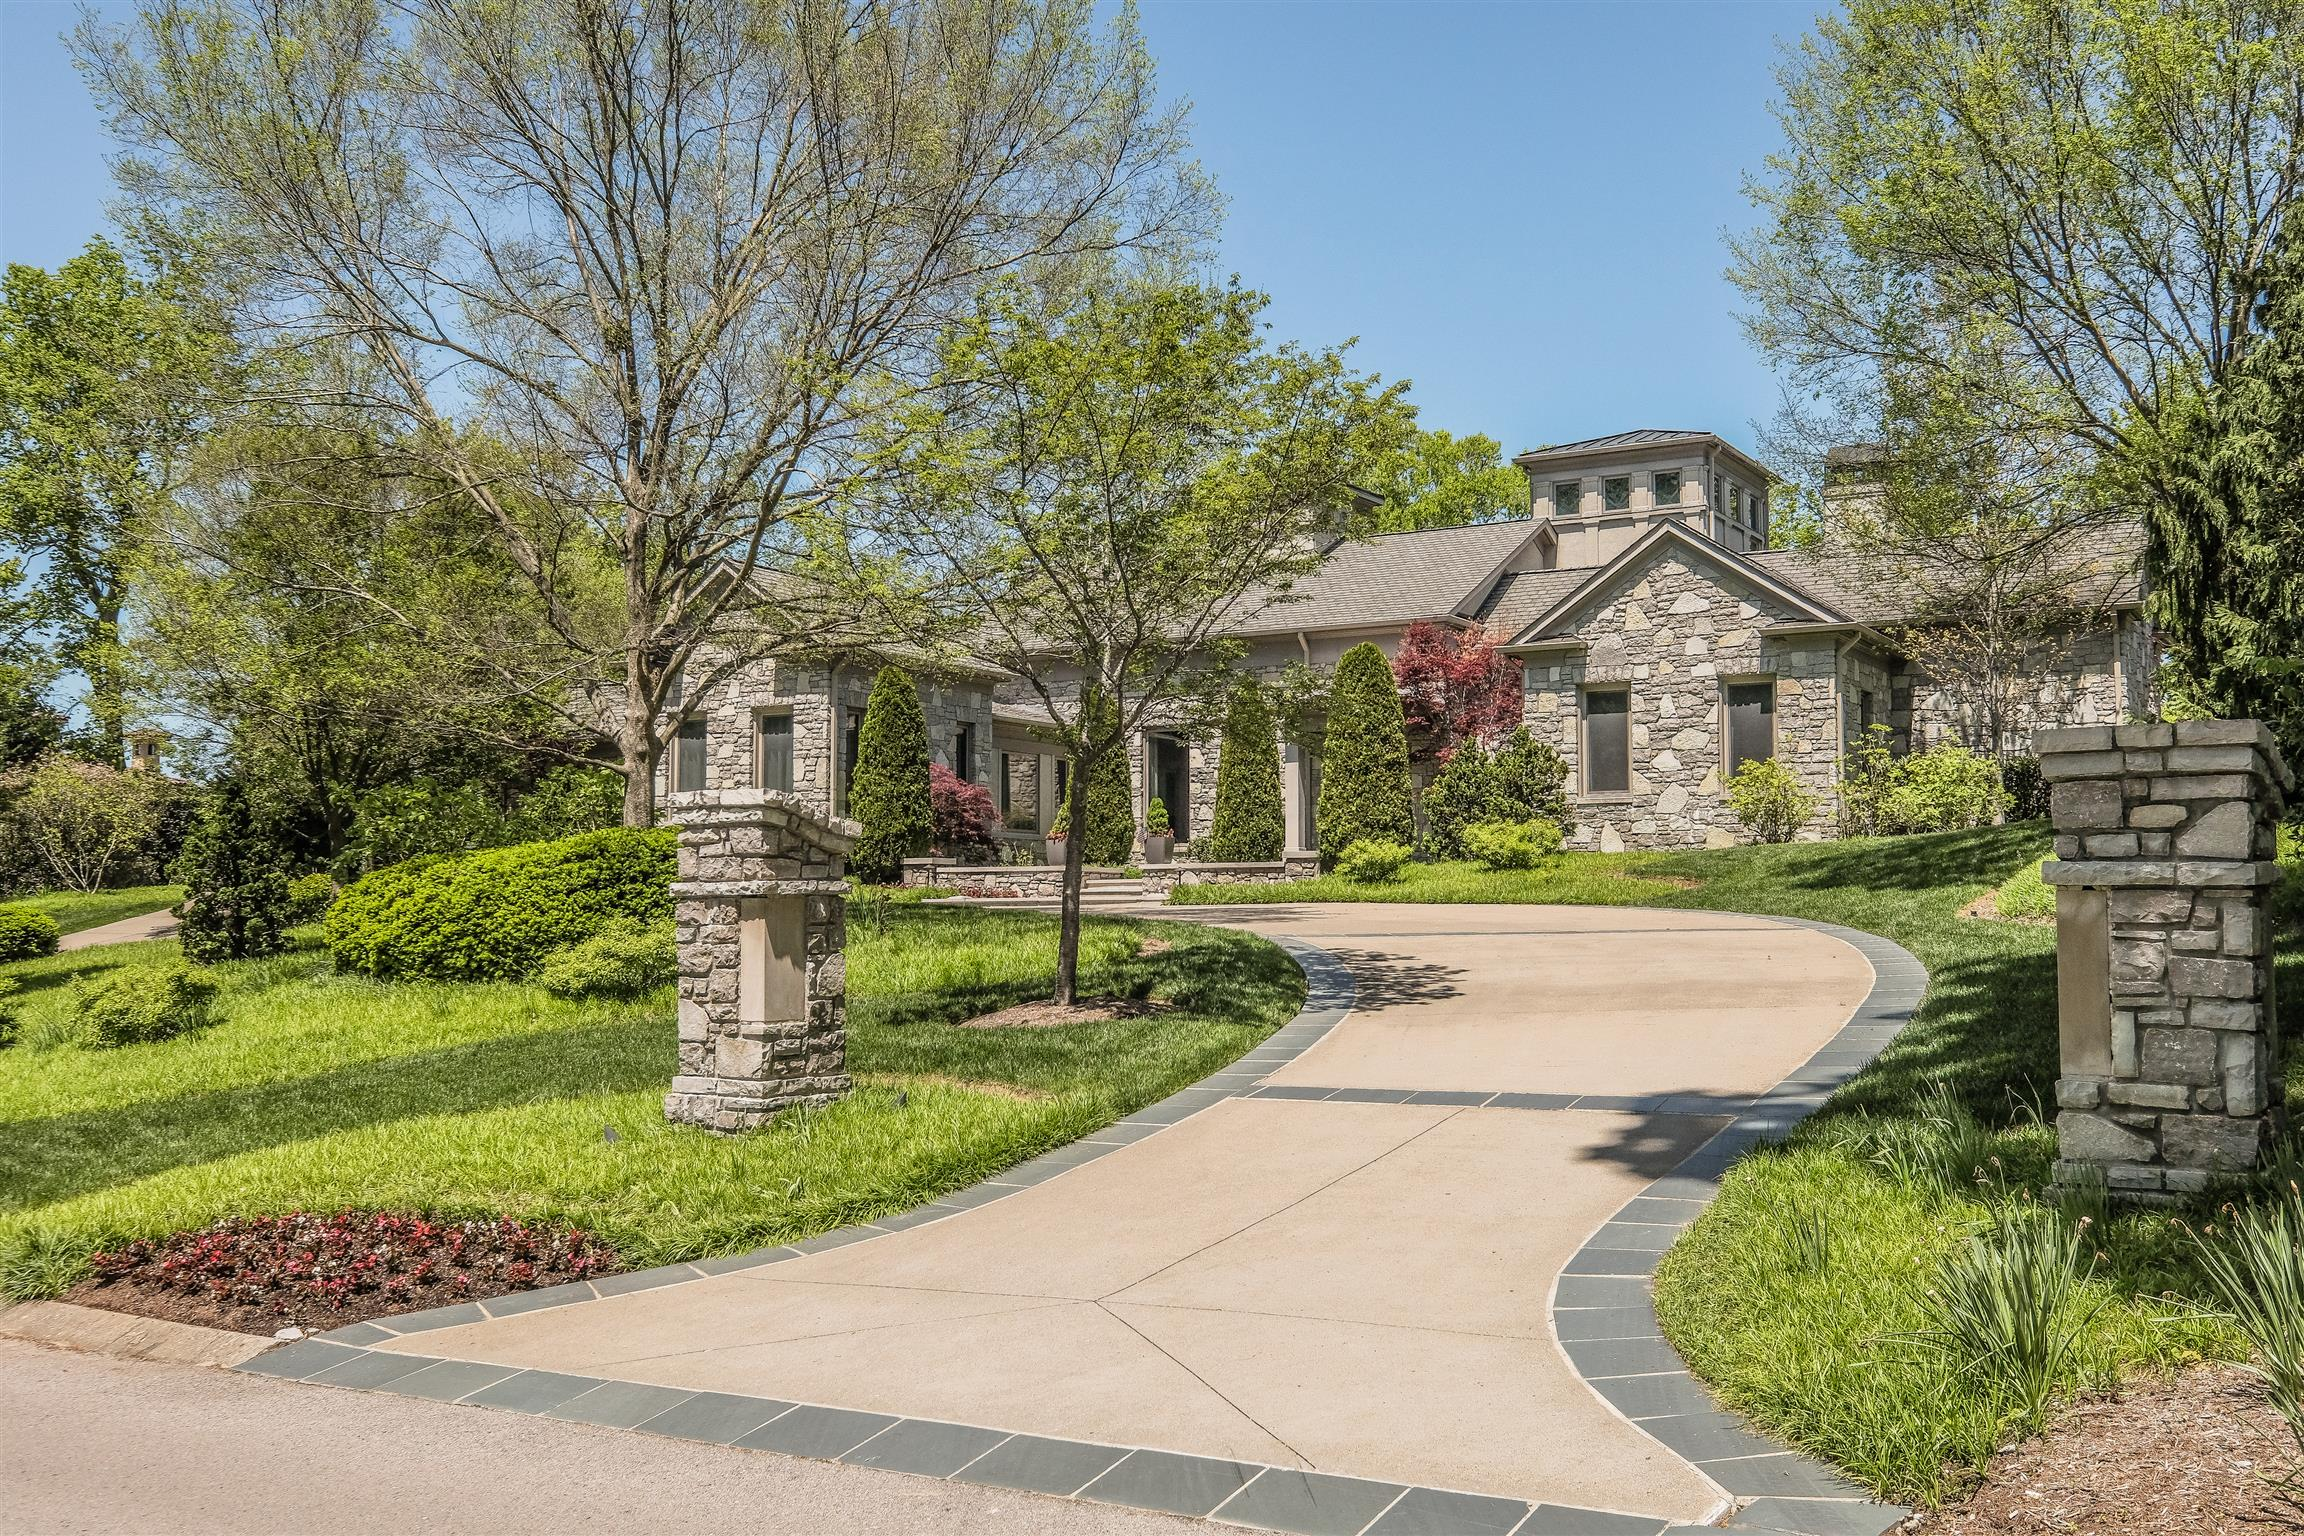 7 Colonel Winstead Dr, Brentwood, TN 37027 - Brentwood, TN real estate listing